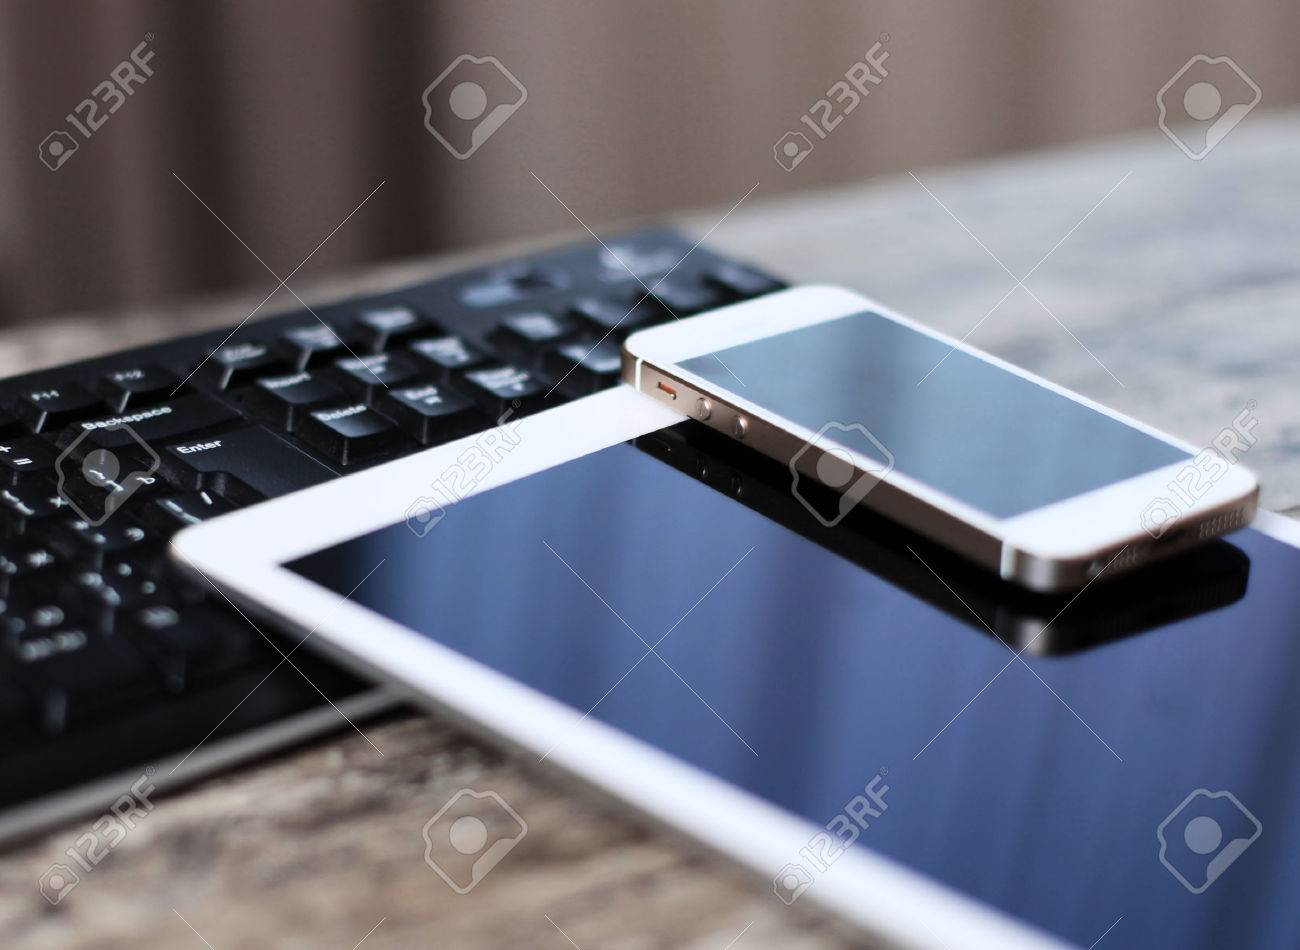 Modern workplace with digital tablet computer and mobile phone - 36503649